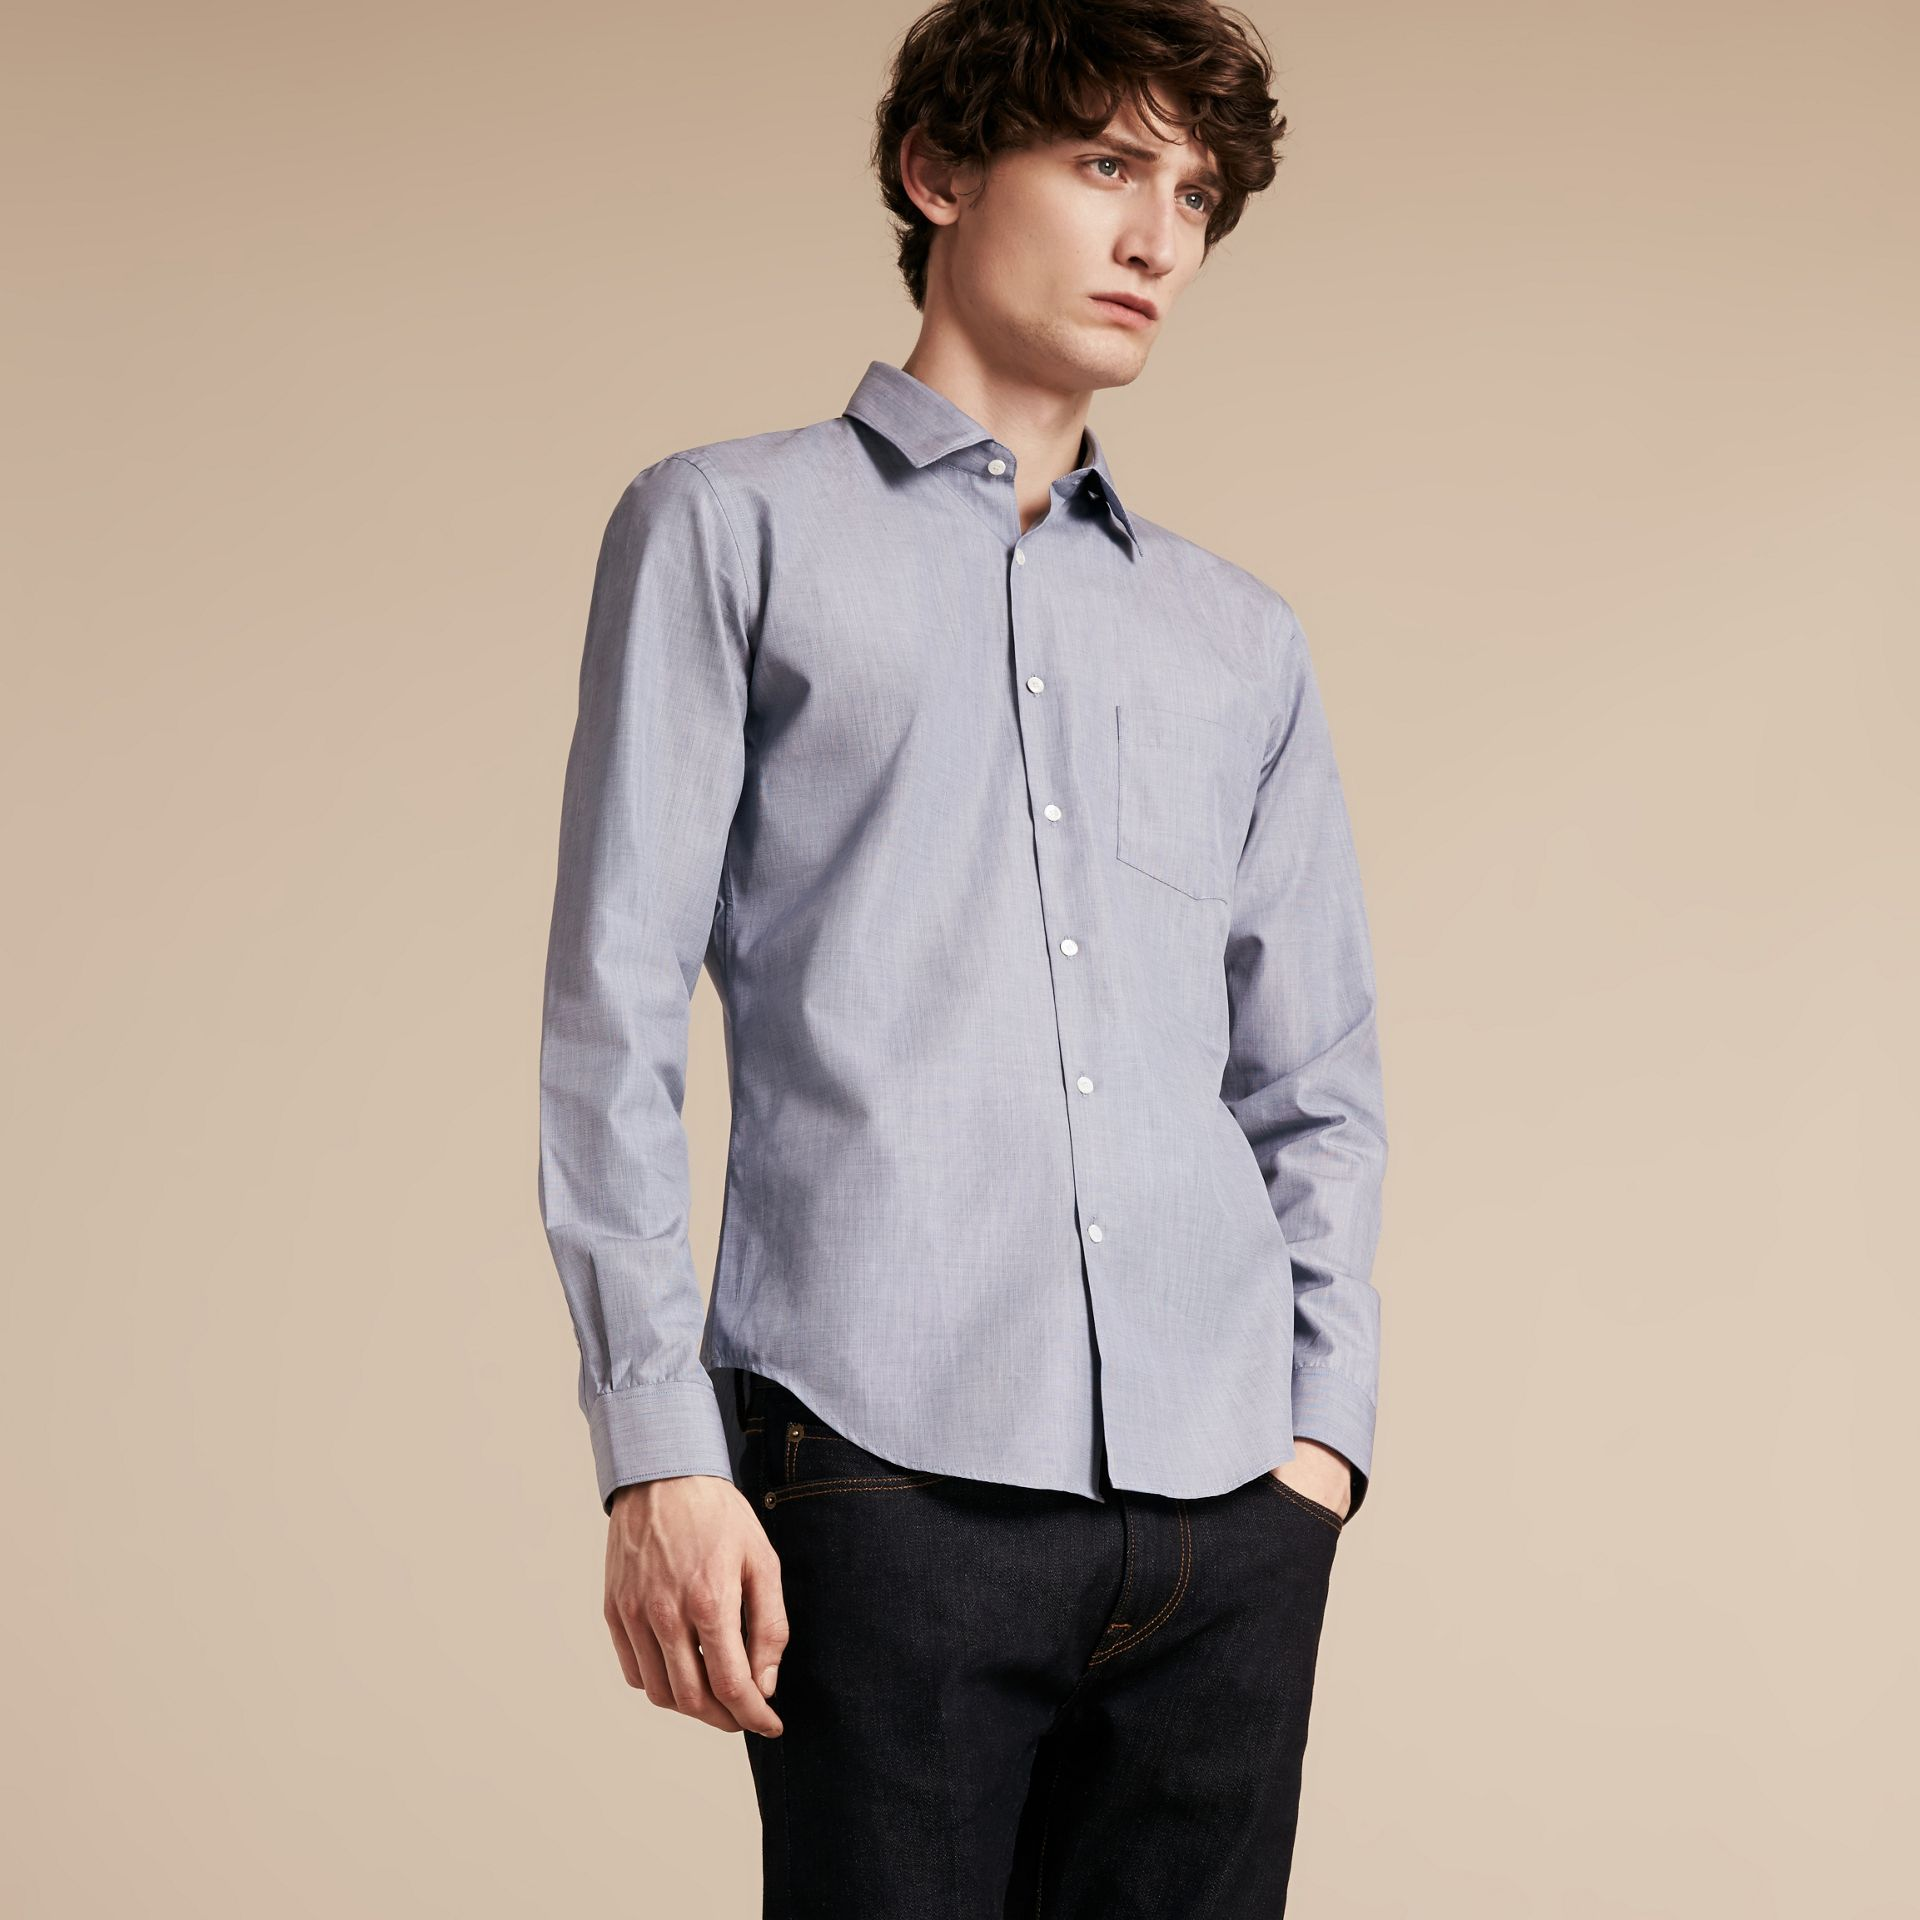 Light blue Mélange Cotton Shirt Light Blue - gallery image 6